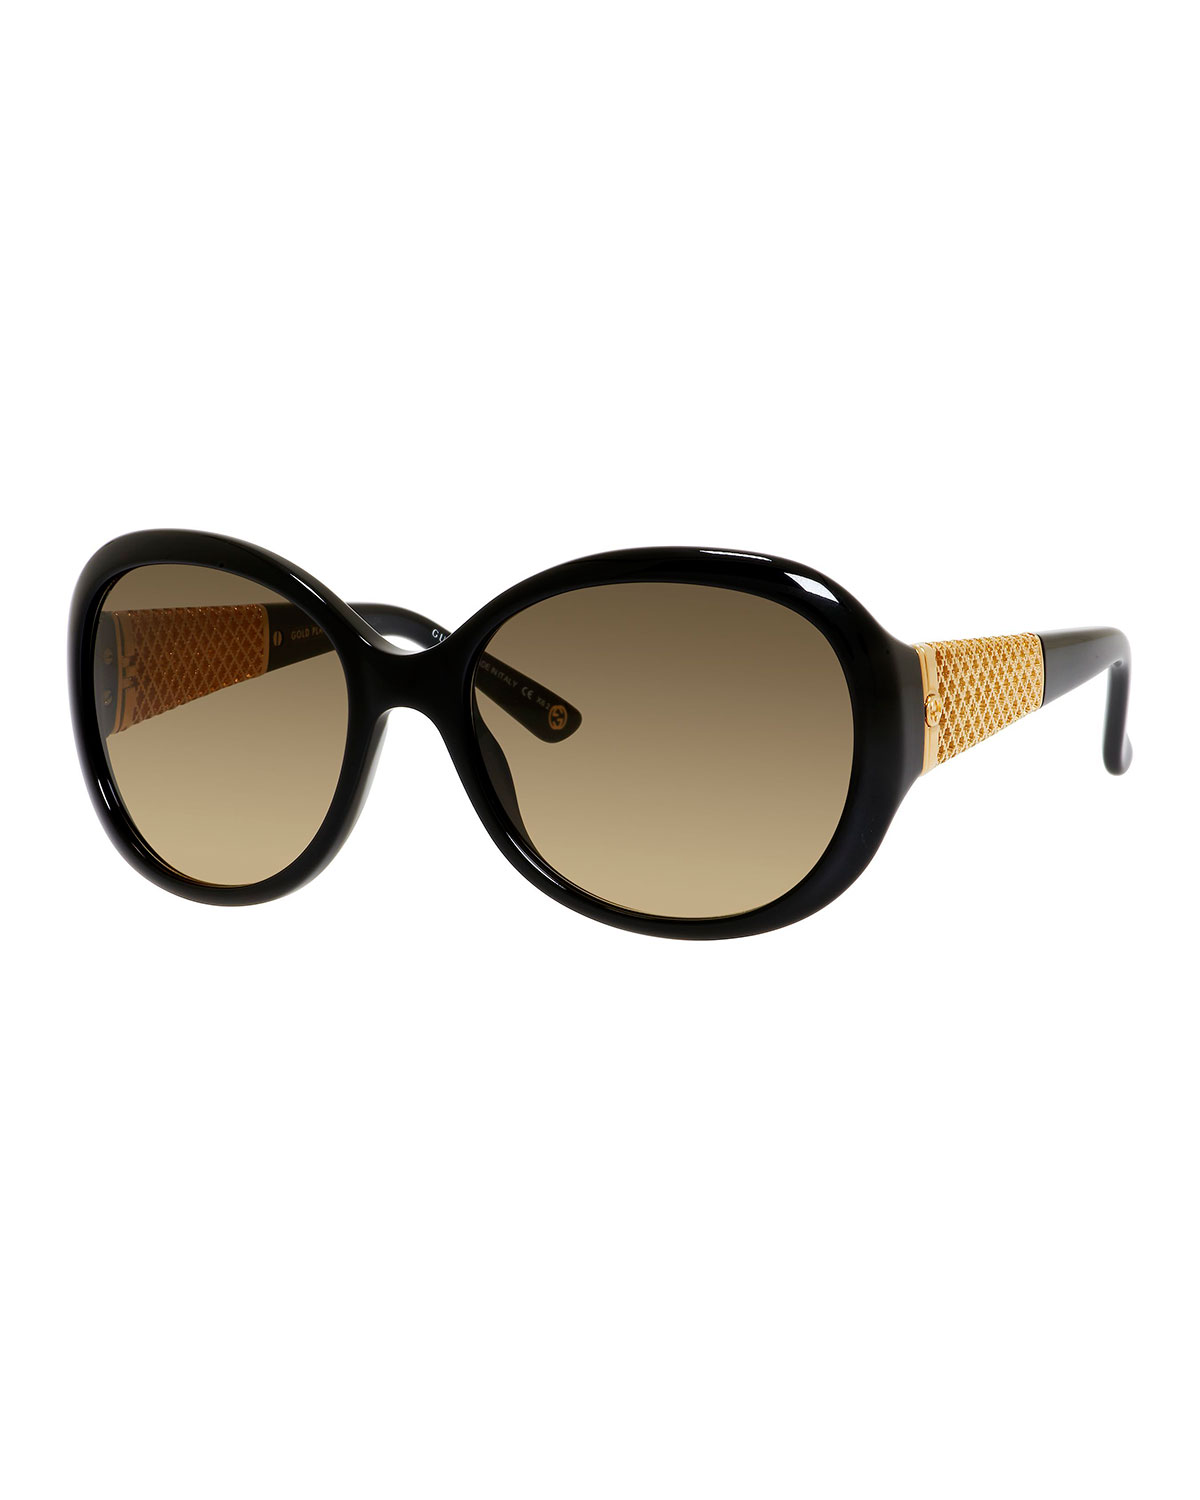 a1a7b5ebe4d Gucci Sunsights Oversized Diamantissima Butterfly Sunglasses